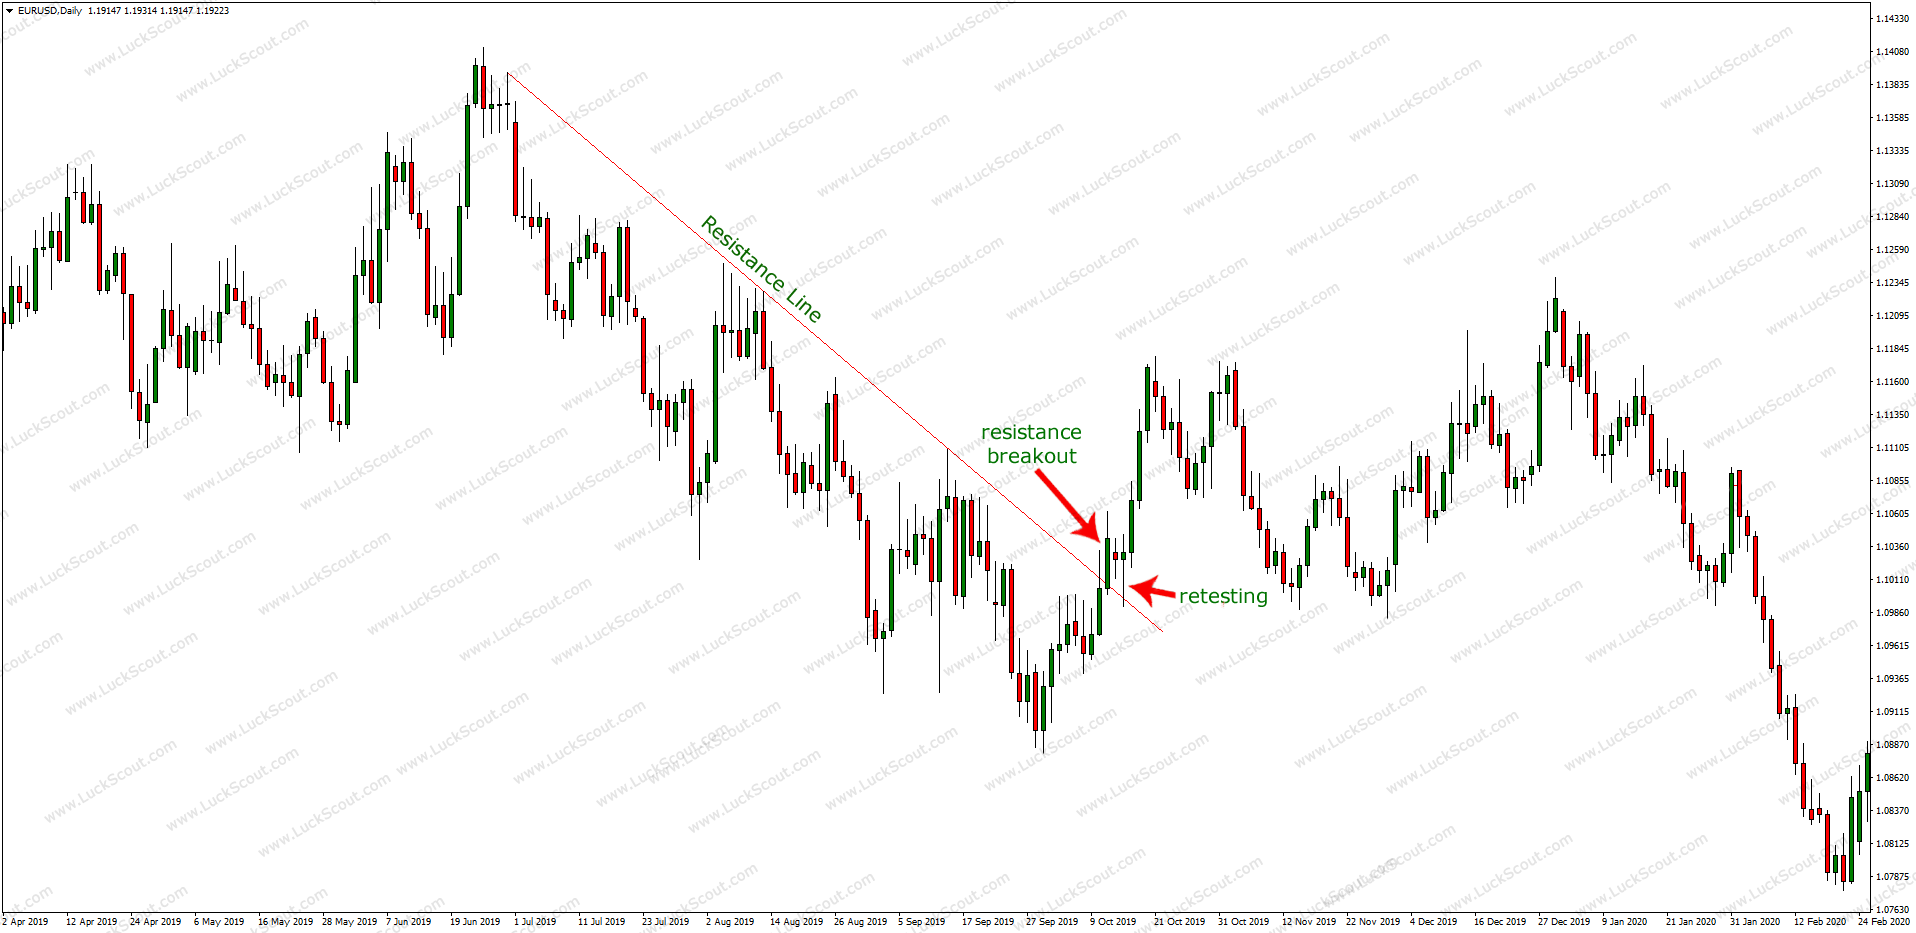 Breakout and Retesting